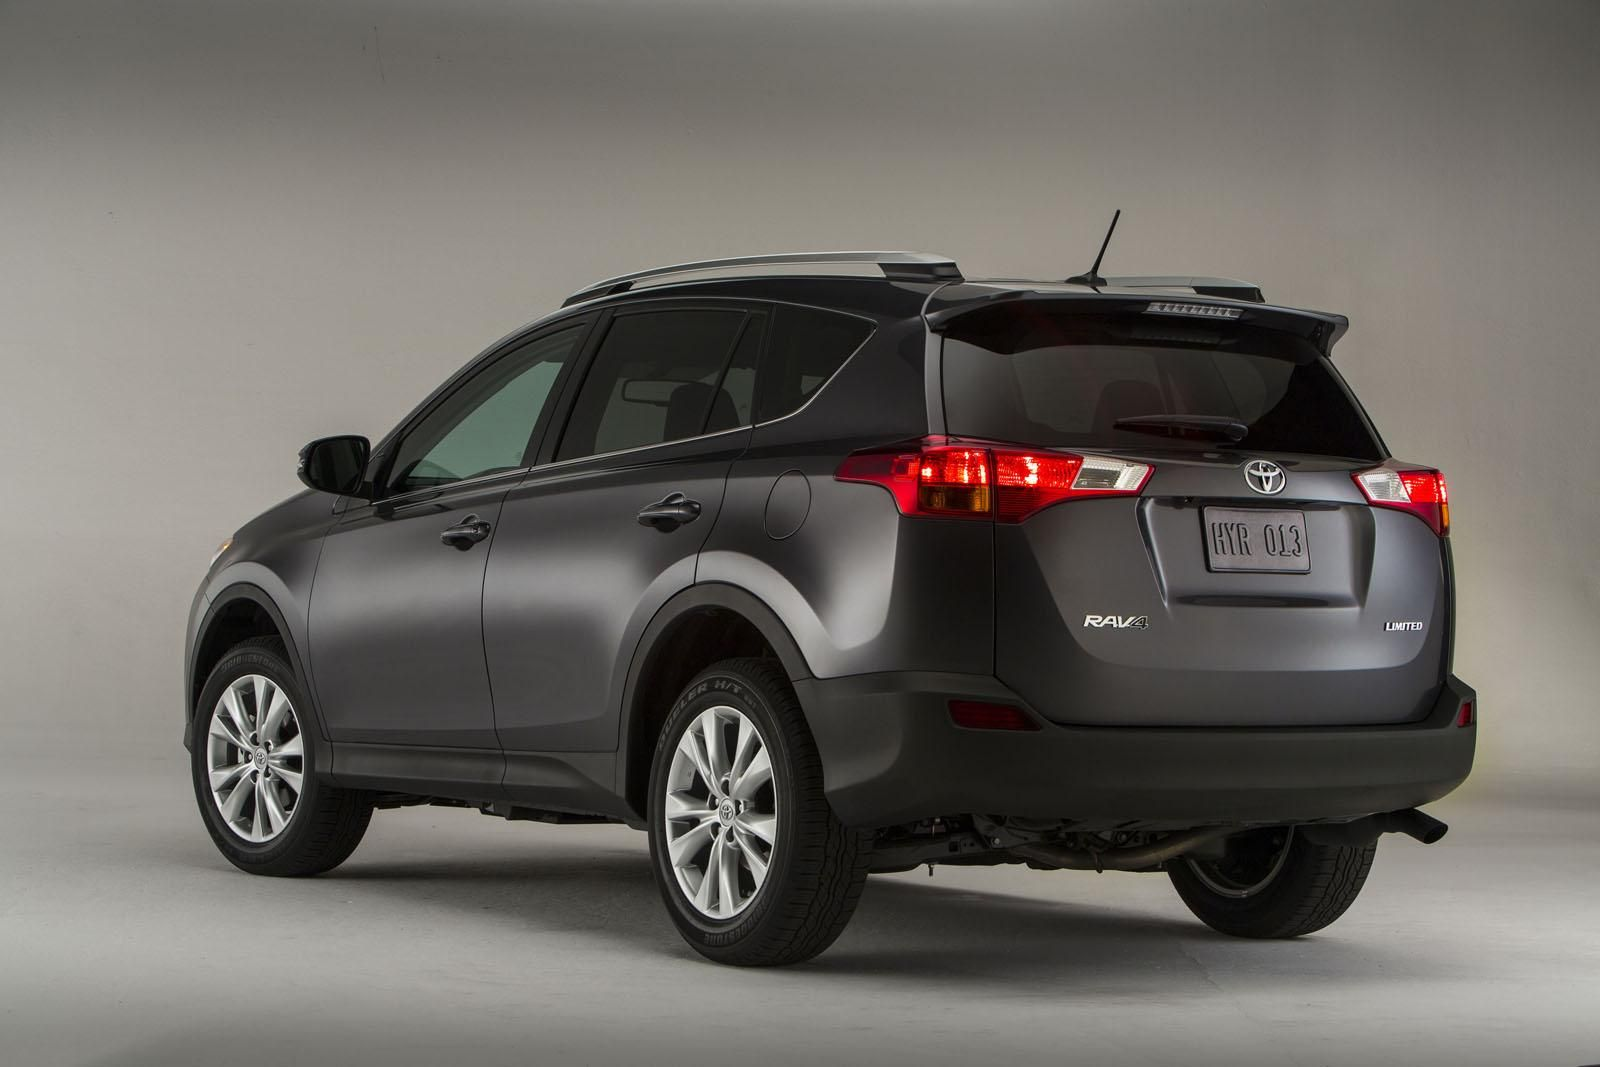 To Get The Details Of All New Toyota Cars Price In India Visit Quikrcars Toyota Cars Toyota Concept Car Toyota Rav4